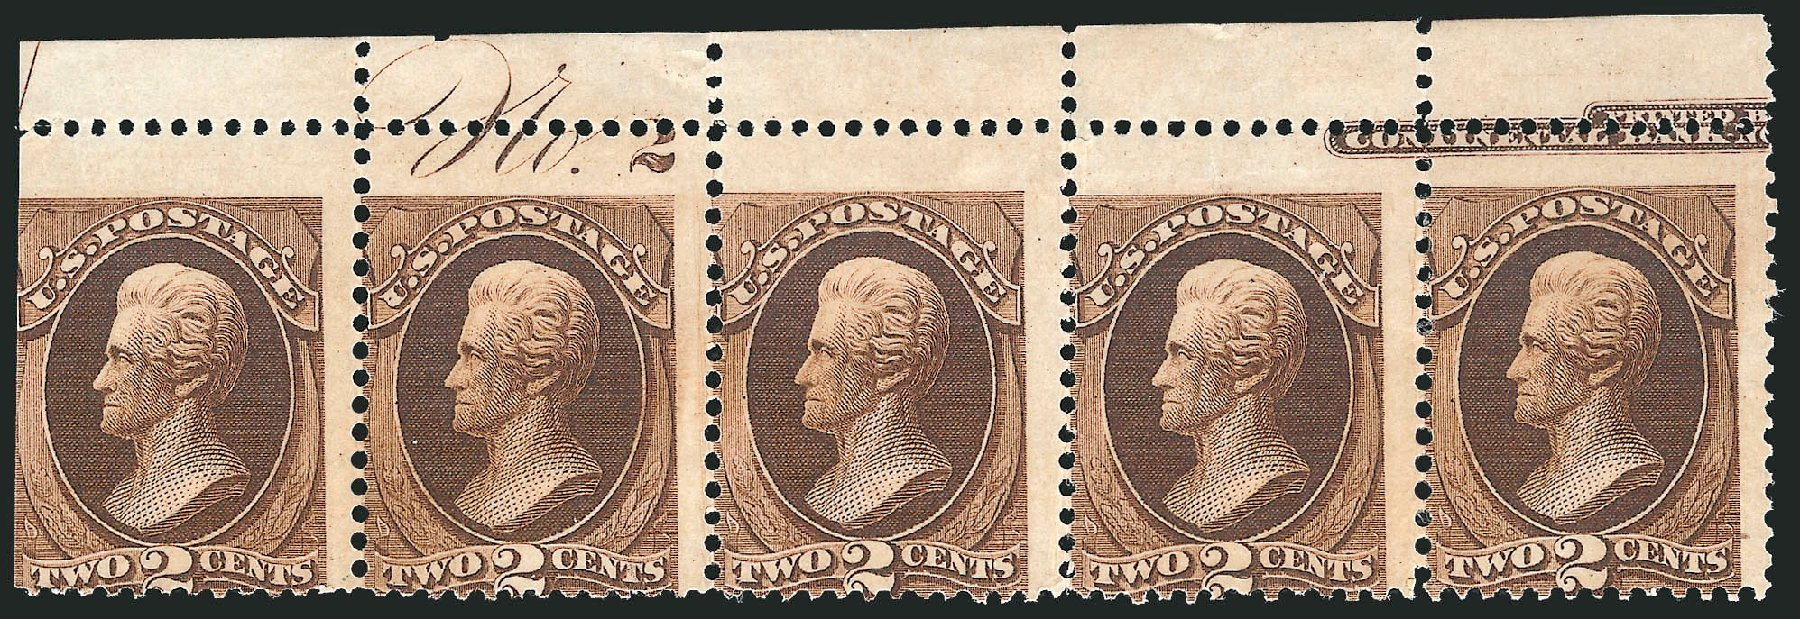 US Stamps Price Scott Catalogue # 157 - 2c 1873 Jackson Continental. Robert Siegel Auction Galleries, Jul 2014, Sale 1077, Lot 148